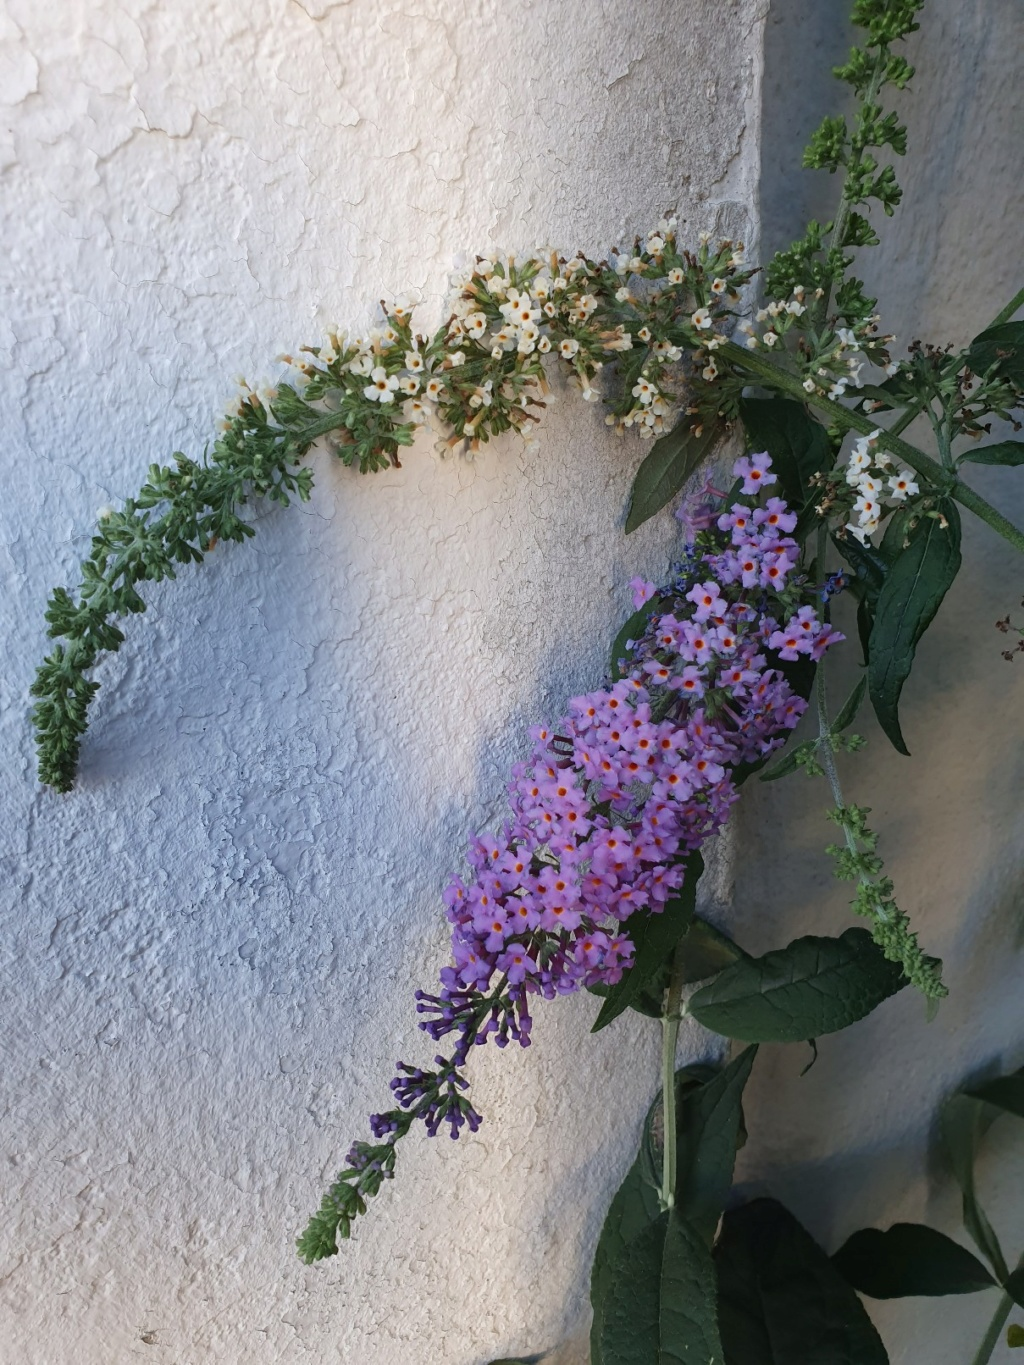 Buddleja davidii - buddleia de David 20190996